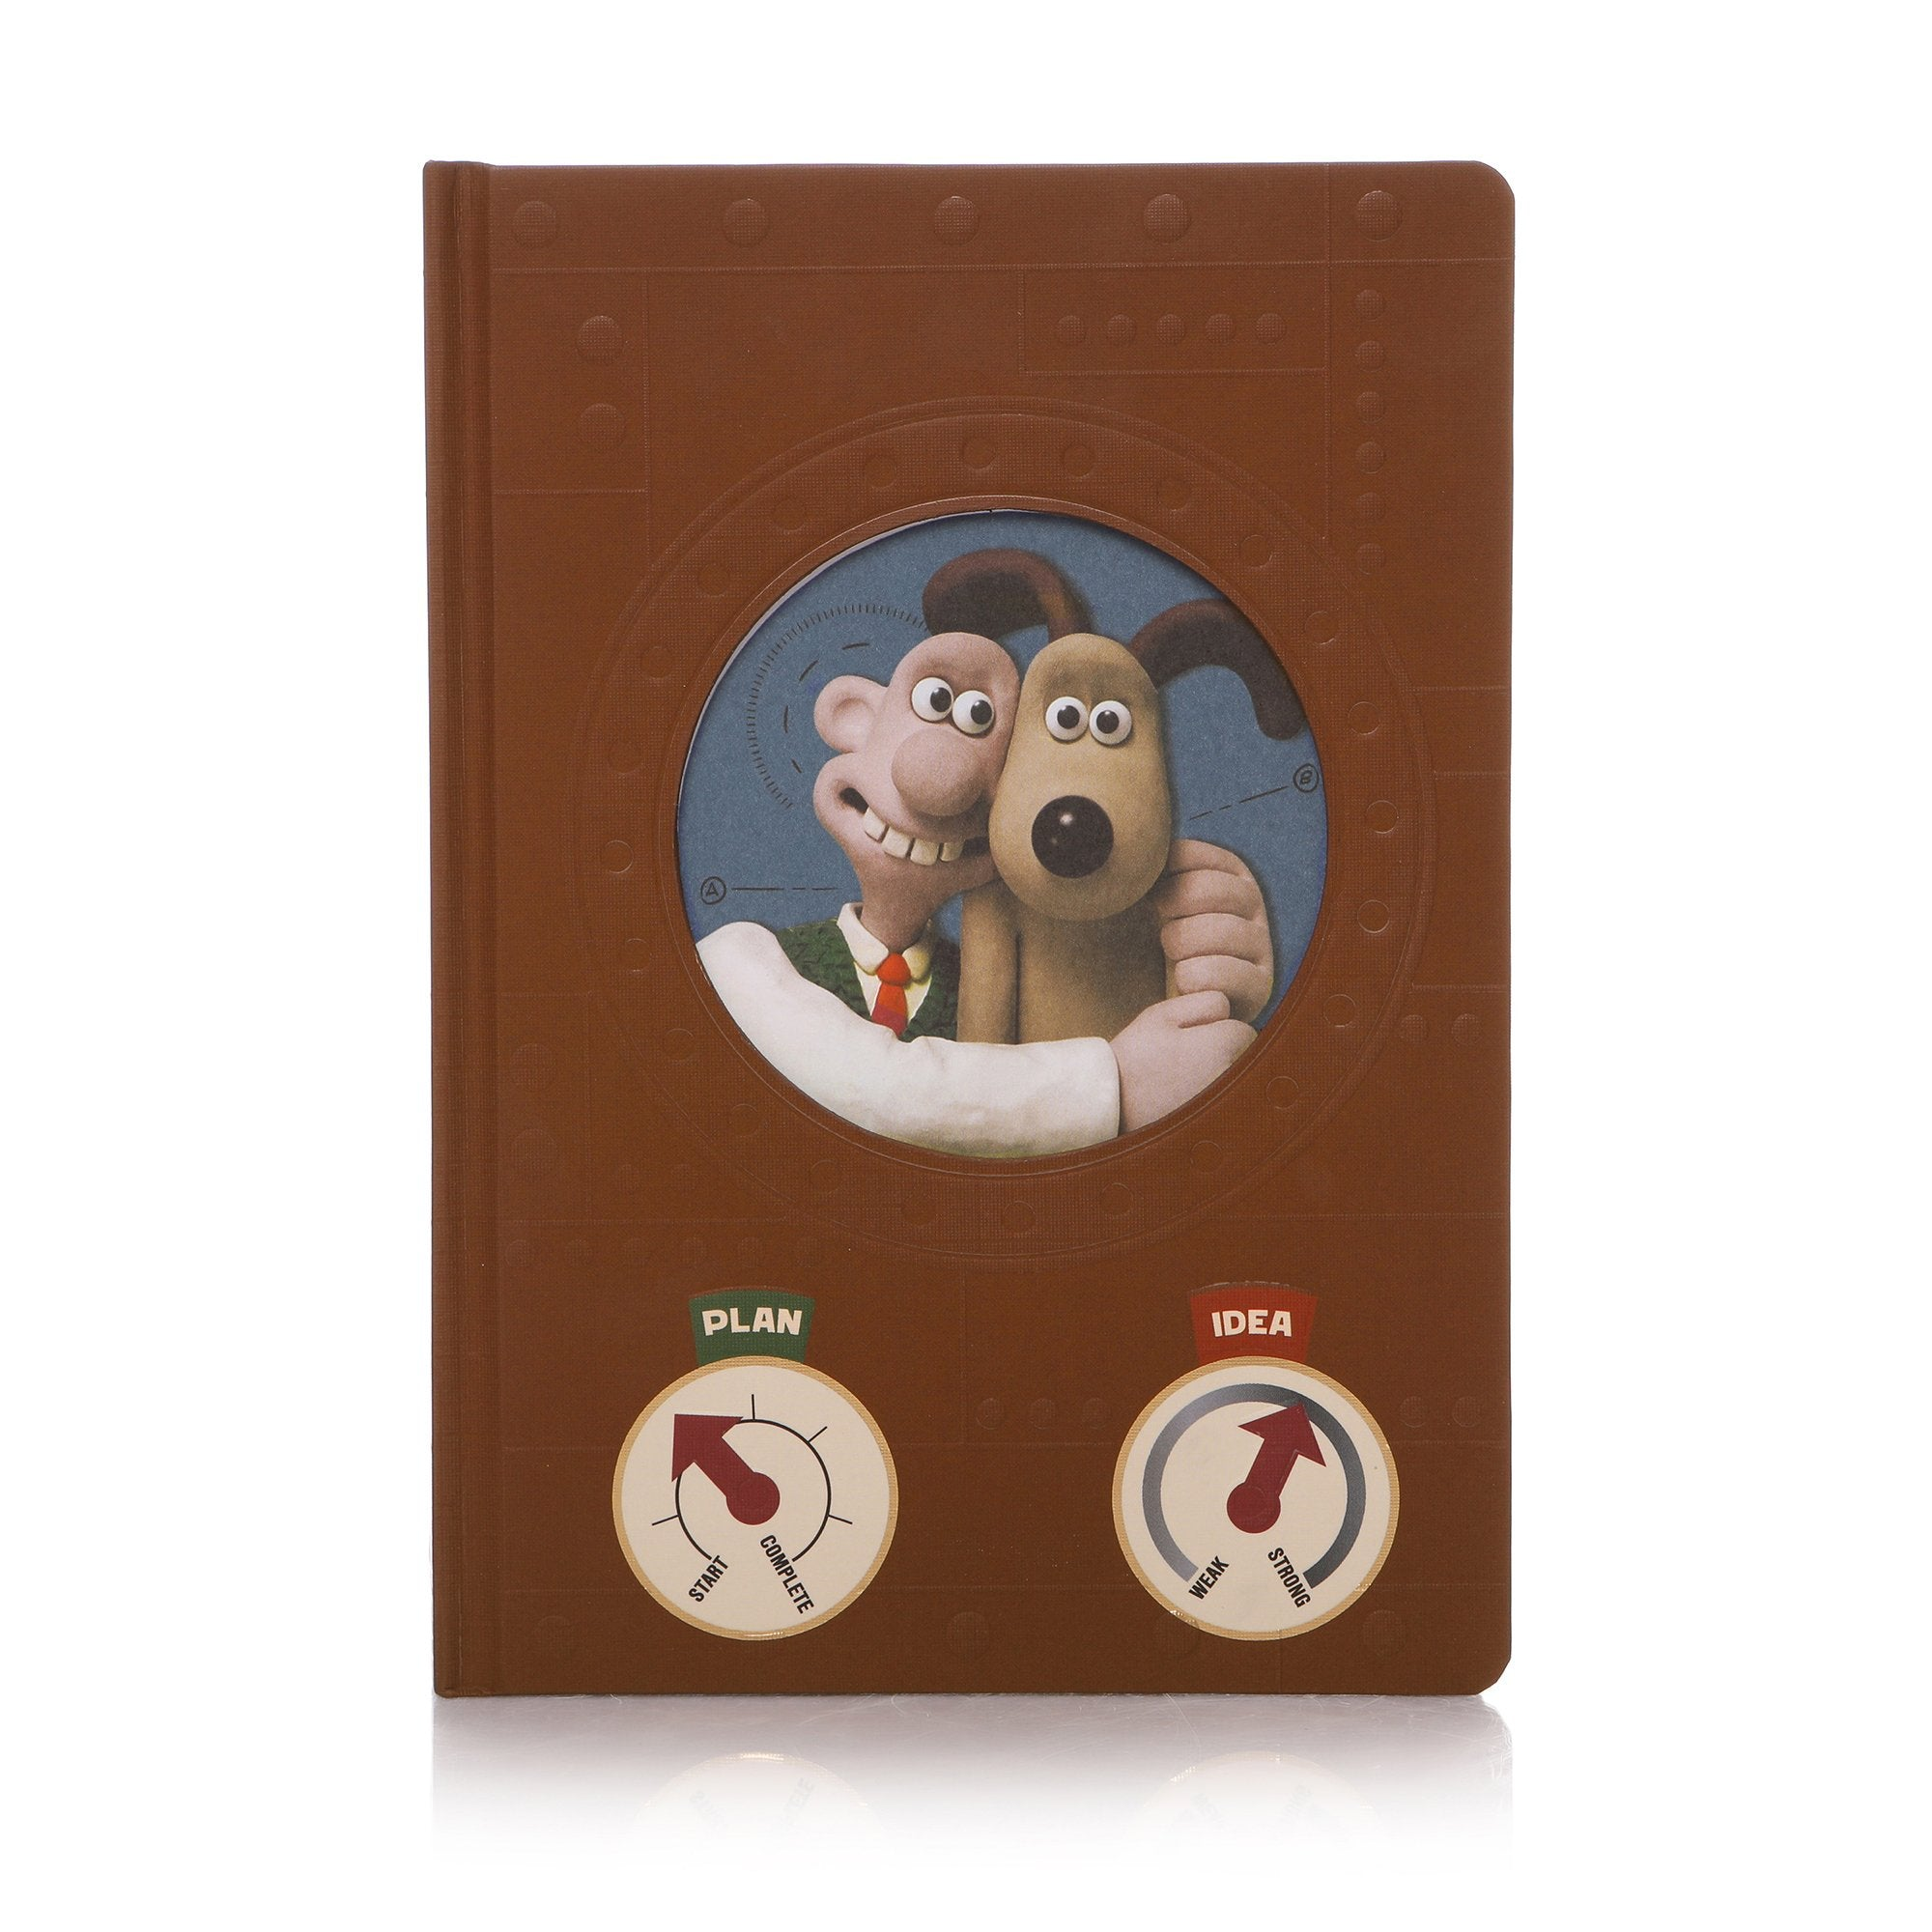 Wallace & Gromit A5 Inventor's Notebook - Half Moon Bay US